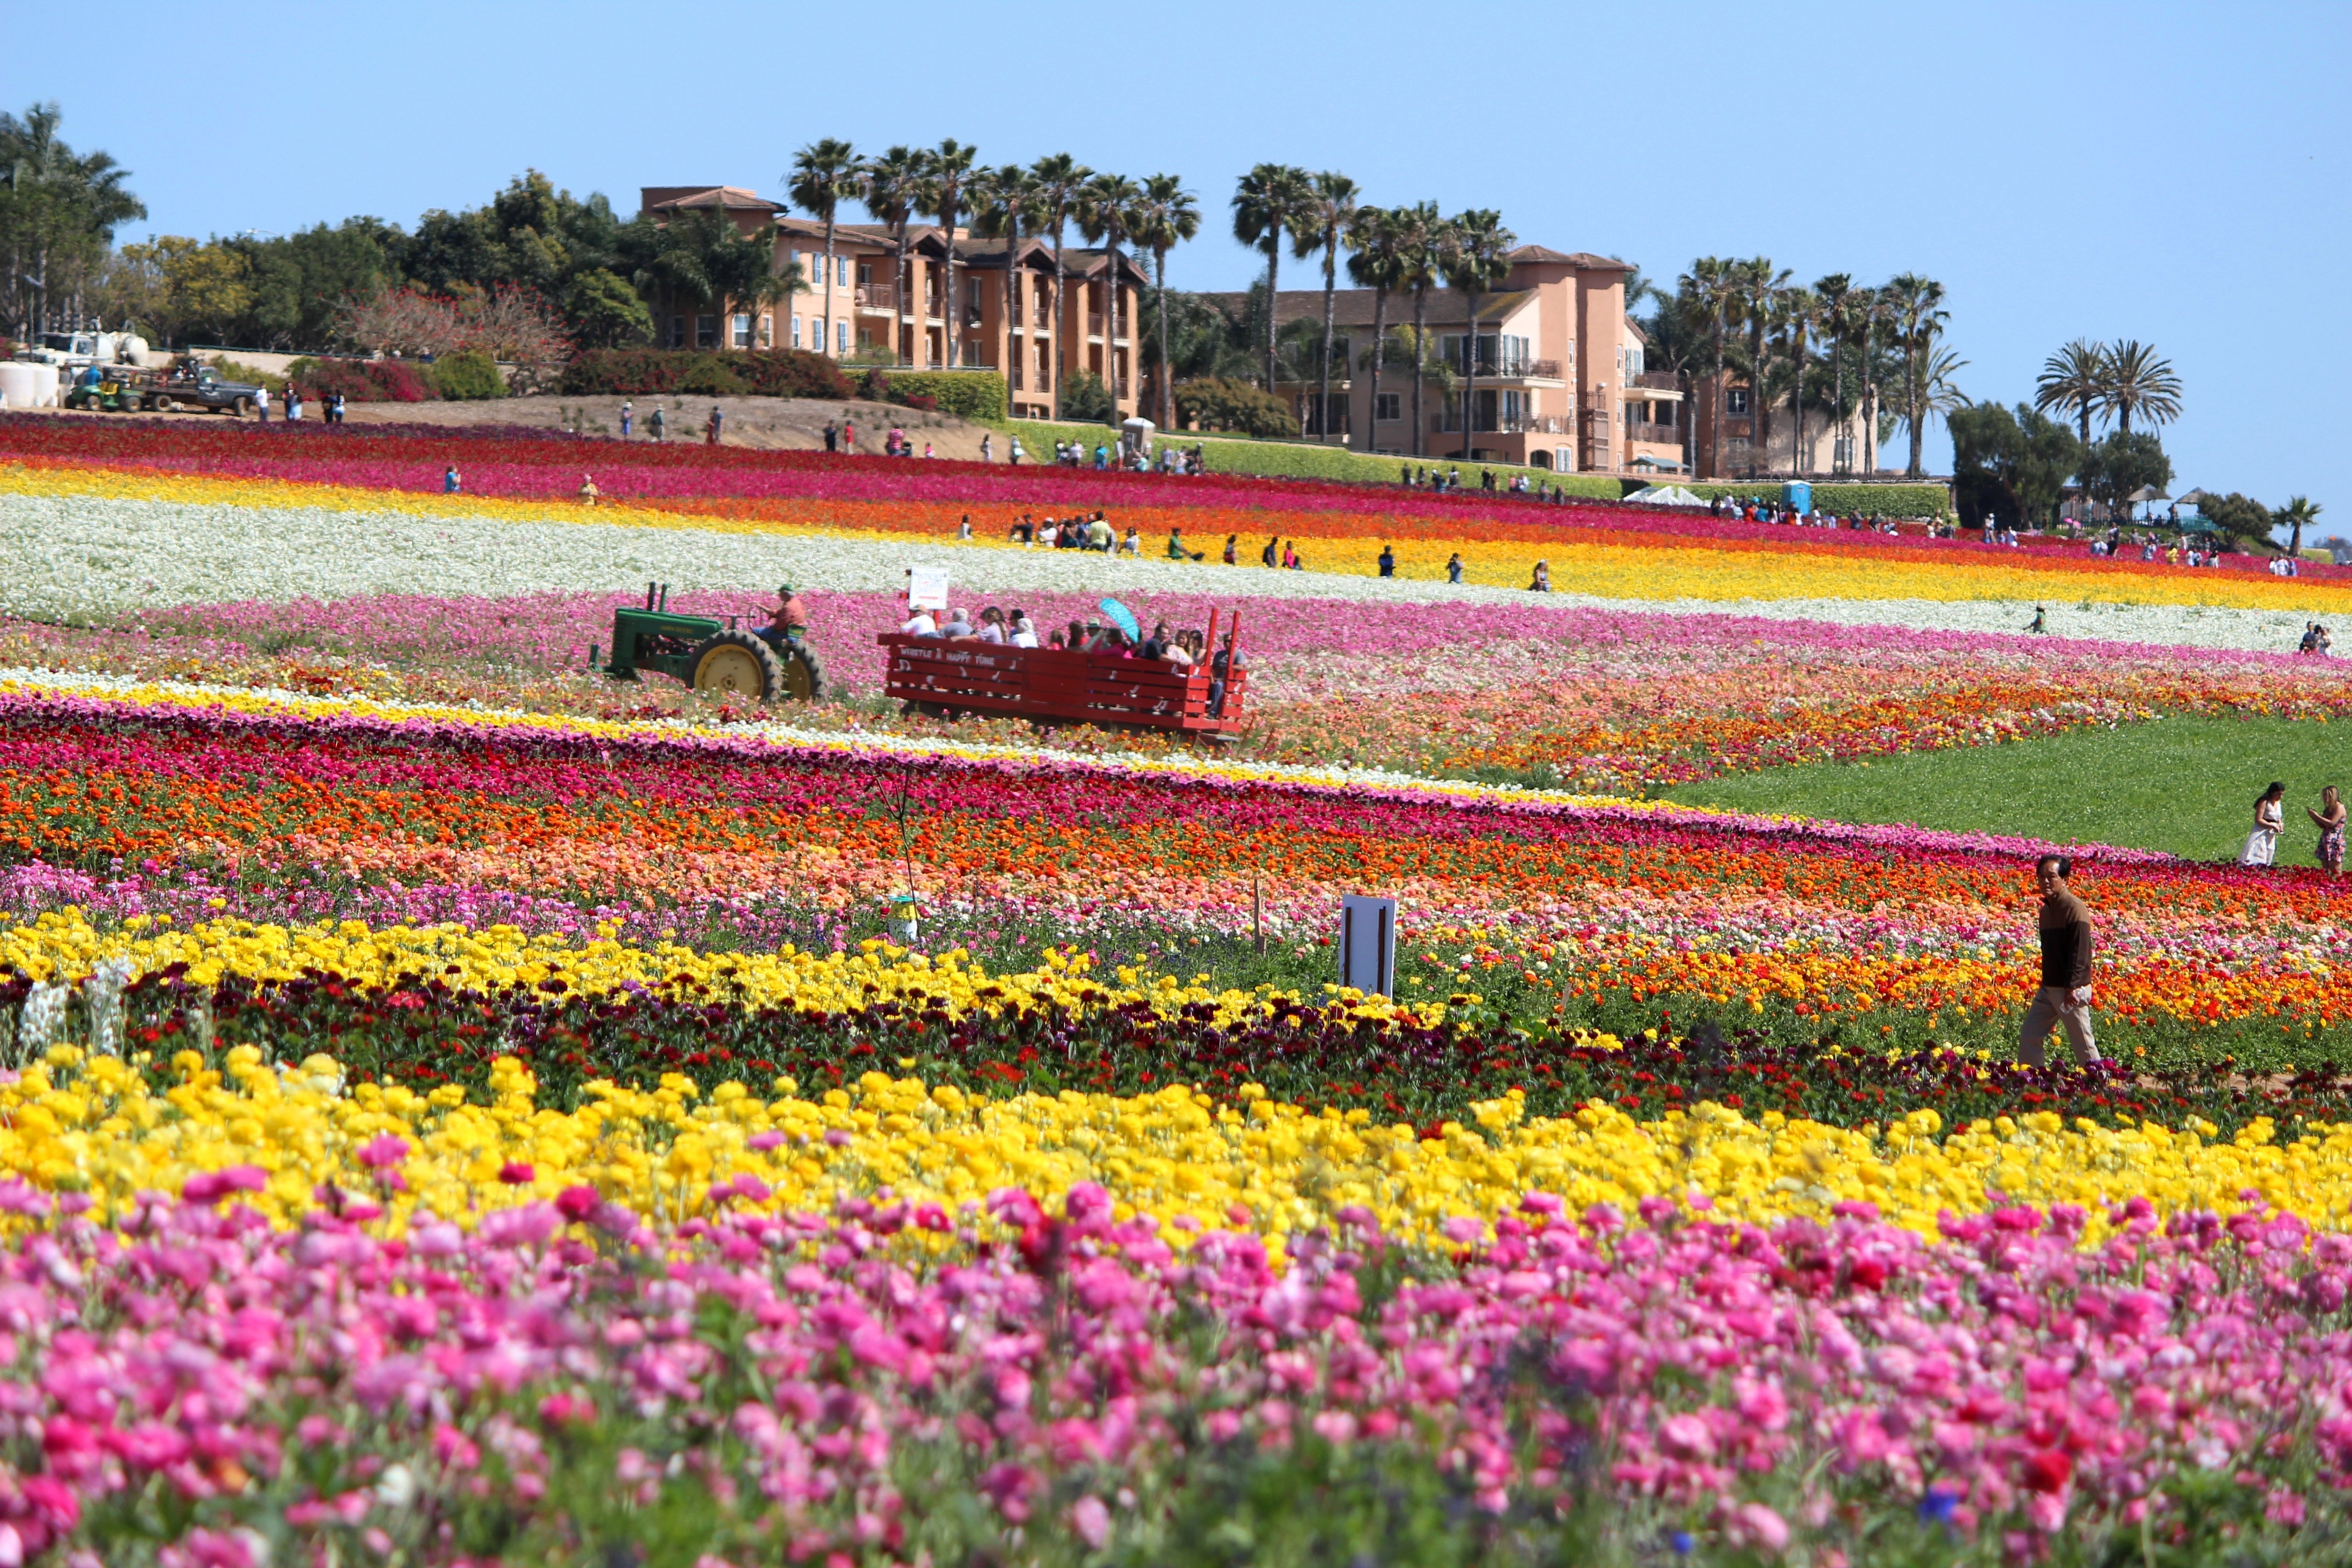 People walk through The Flower Fields at Carlsbad Ranch on a sunny day.